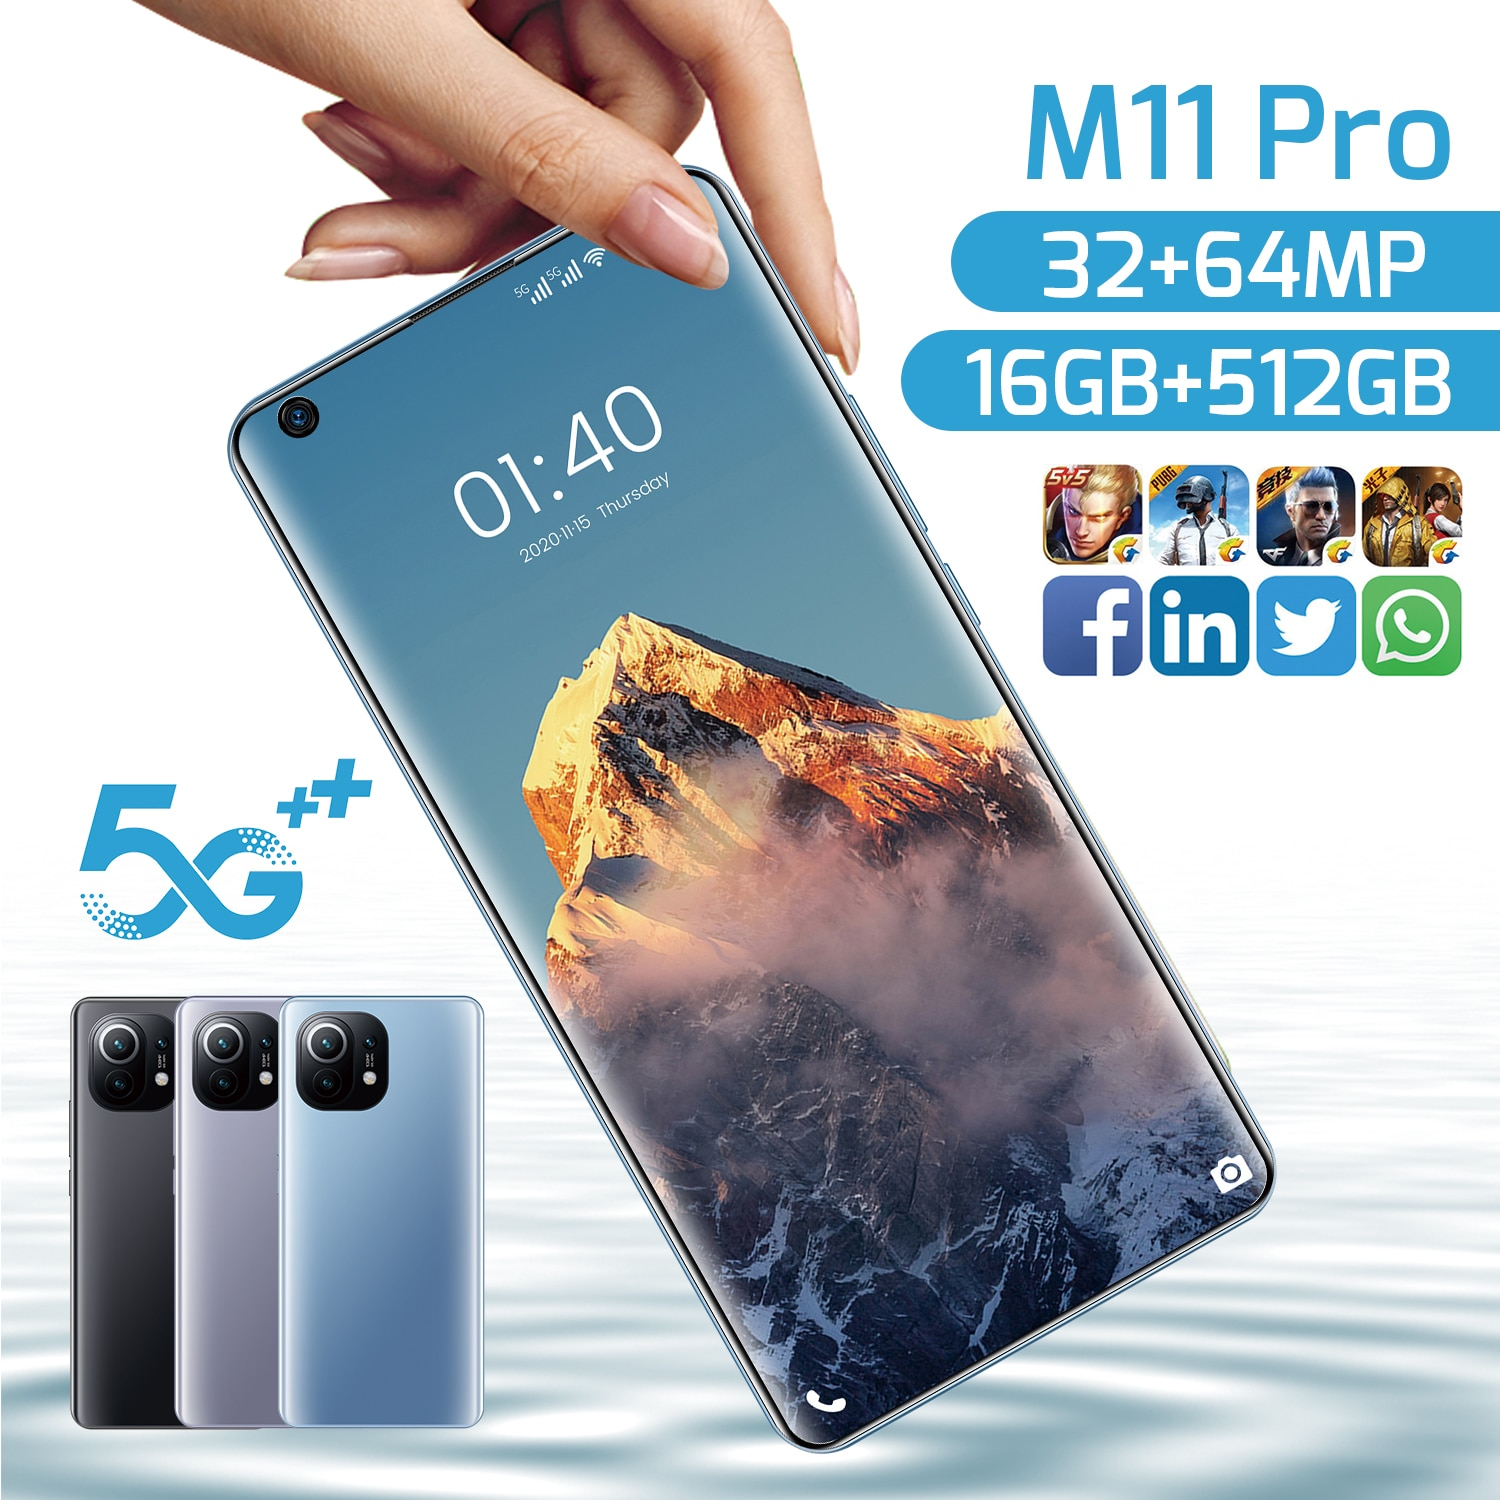 2021 Newest  M11 Pro 7.3 Inch Smartphone 10 Core 6800Mah 16+512GB 32MP+64MP Fual Screen Dual SIM 5G Android Mobile Phone